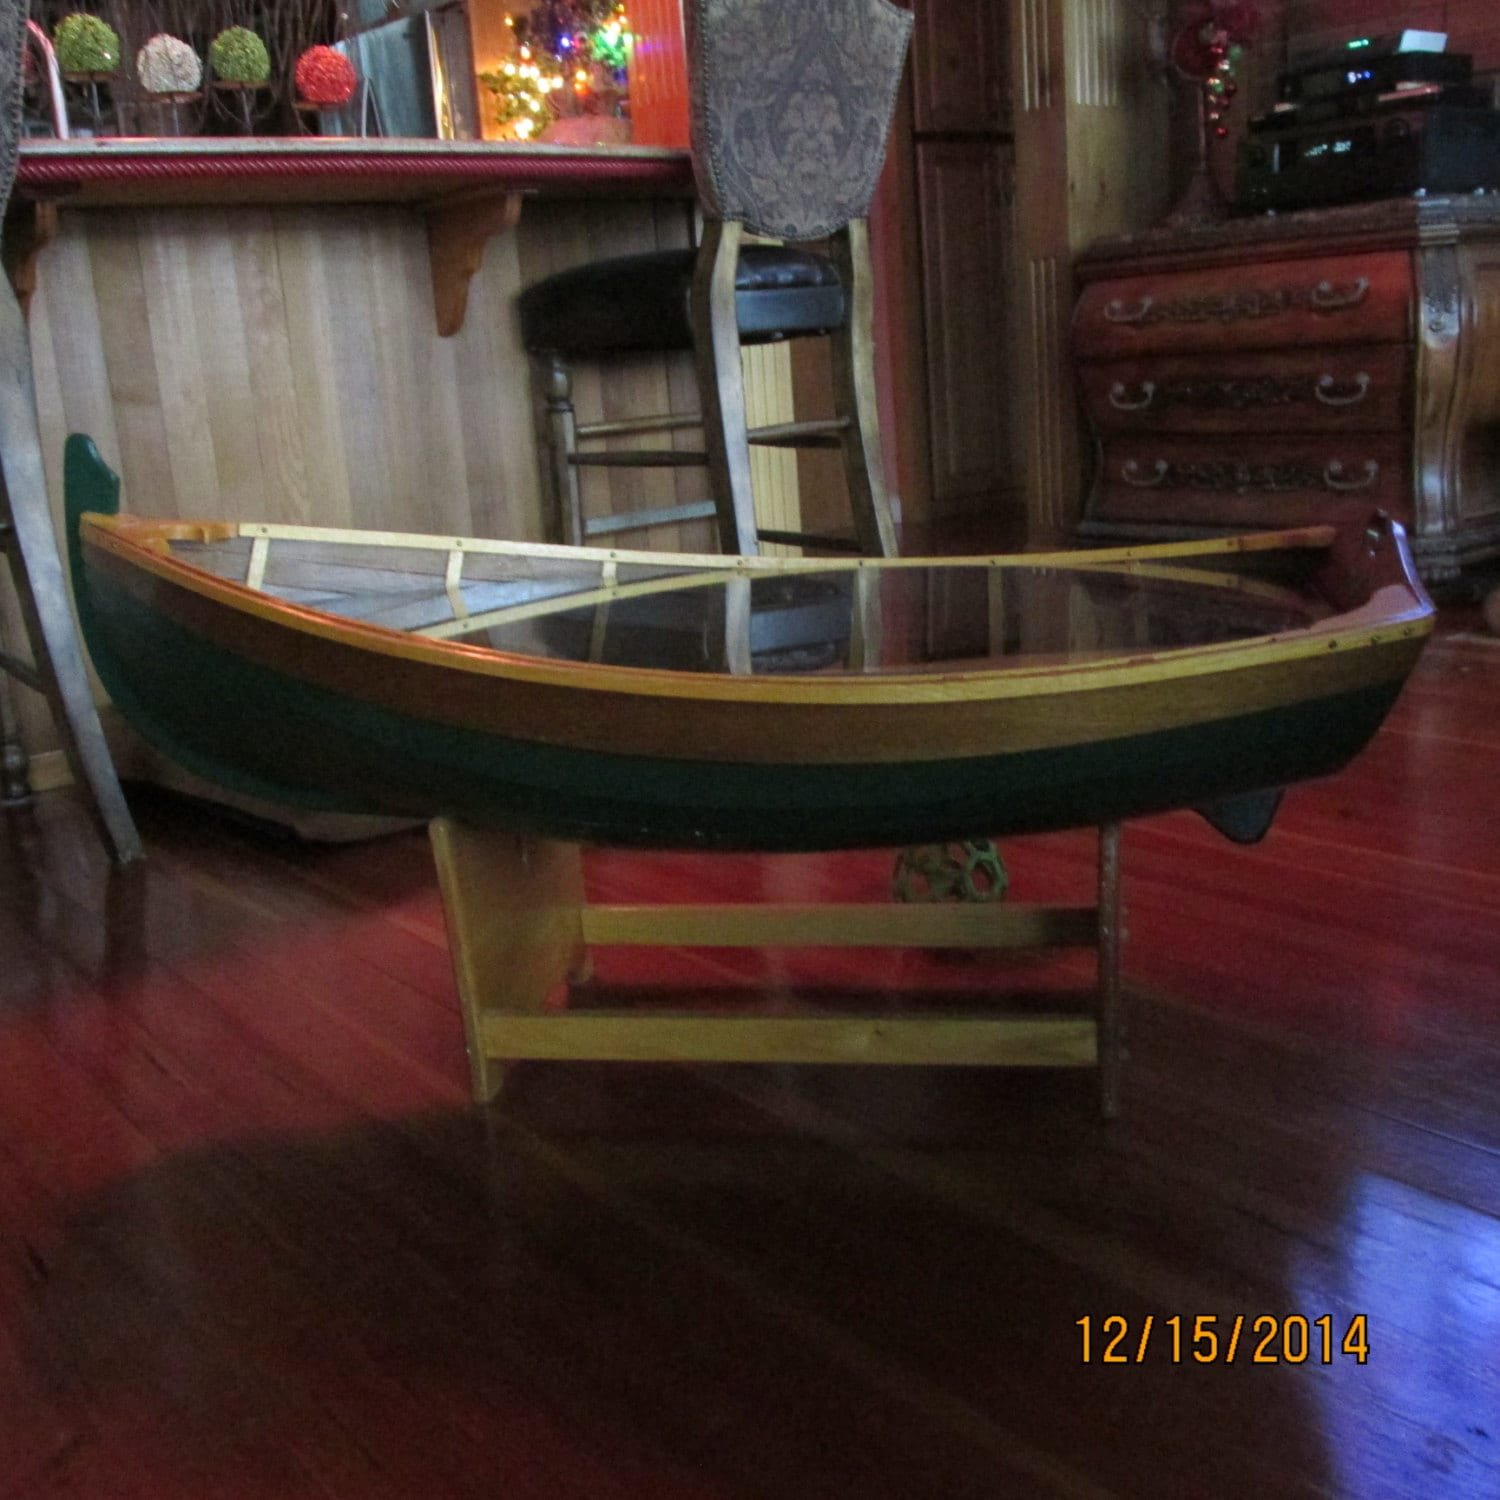 Wooden Boat Coffee Table Artist creation perfect to scale.